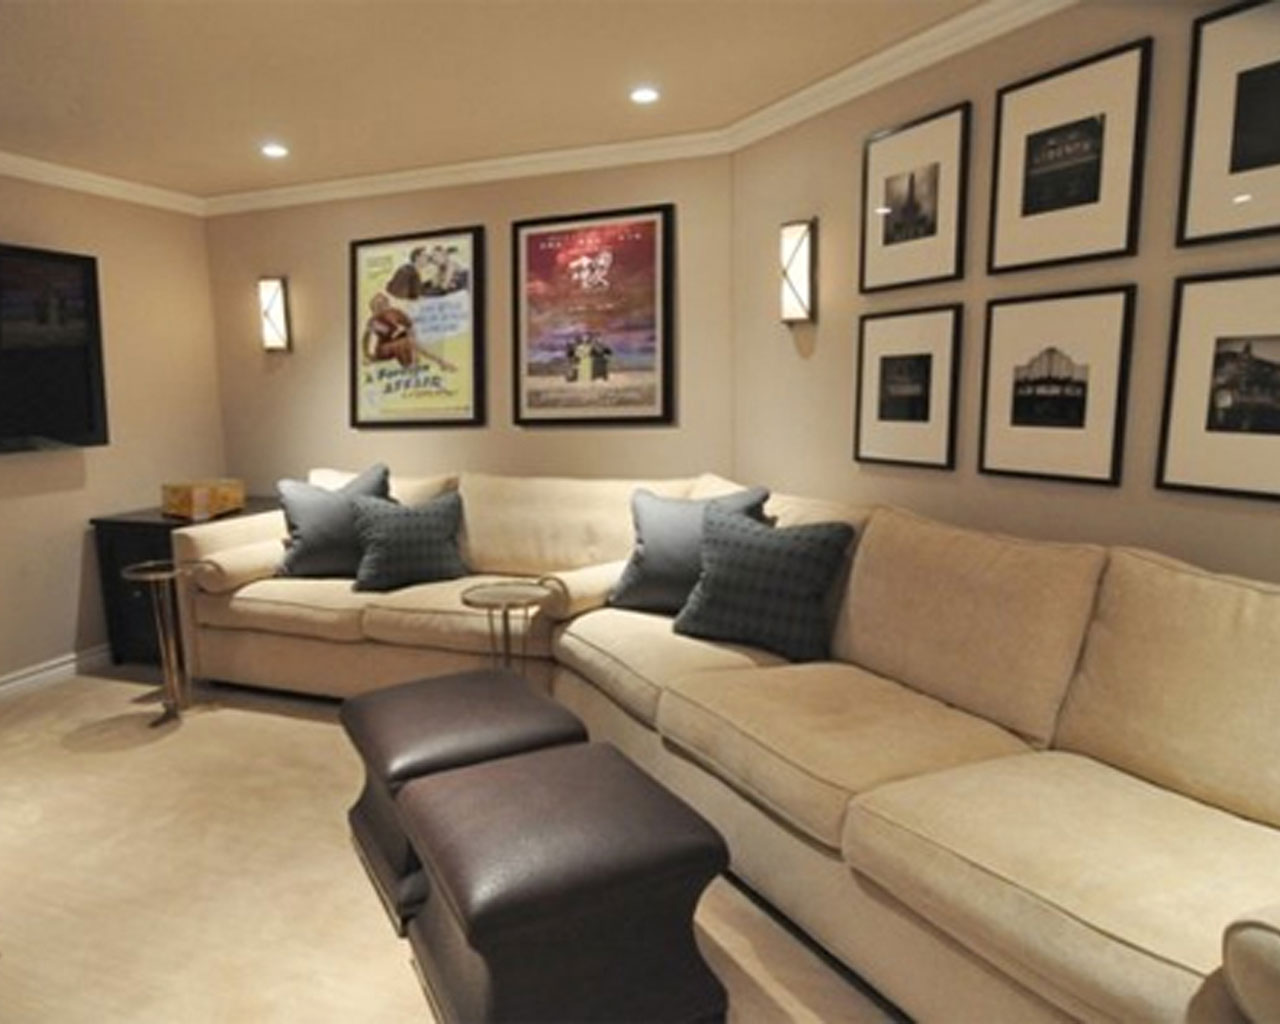 Astonishing Home Cinema Decorating Ideas Of Images About Movie Theme Acnn Decor